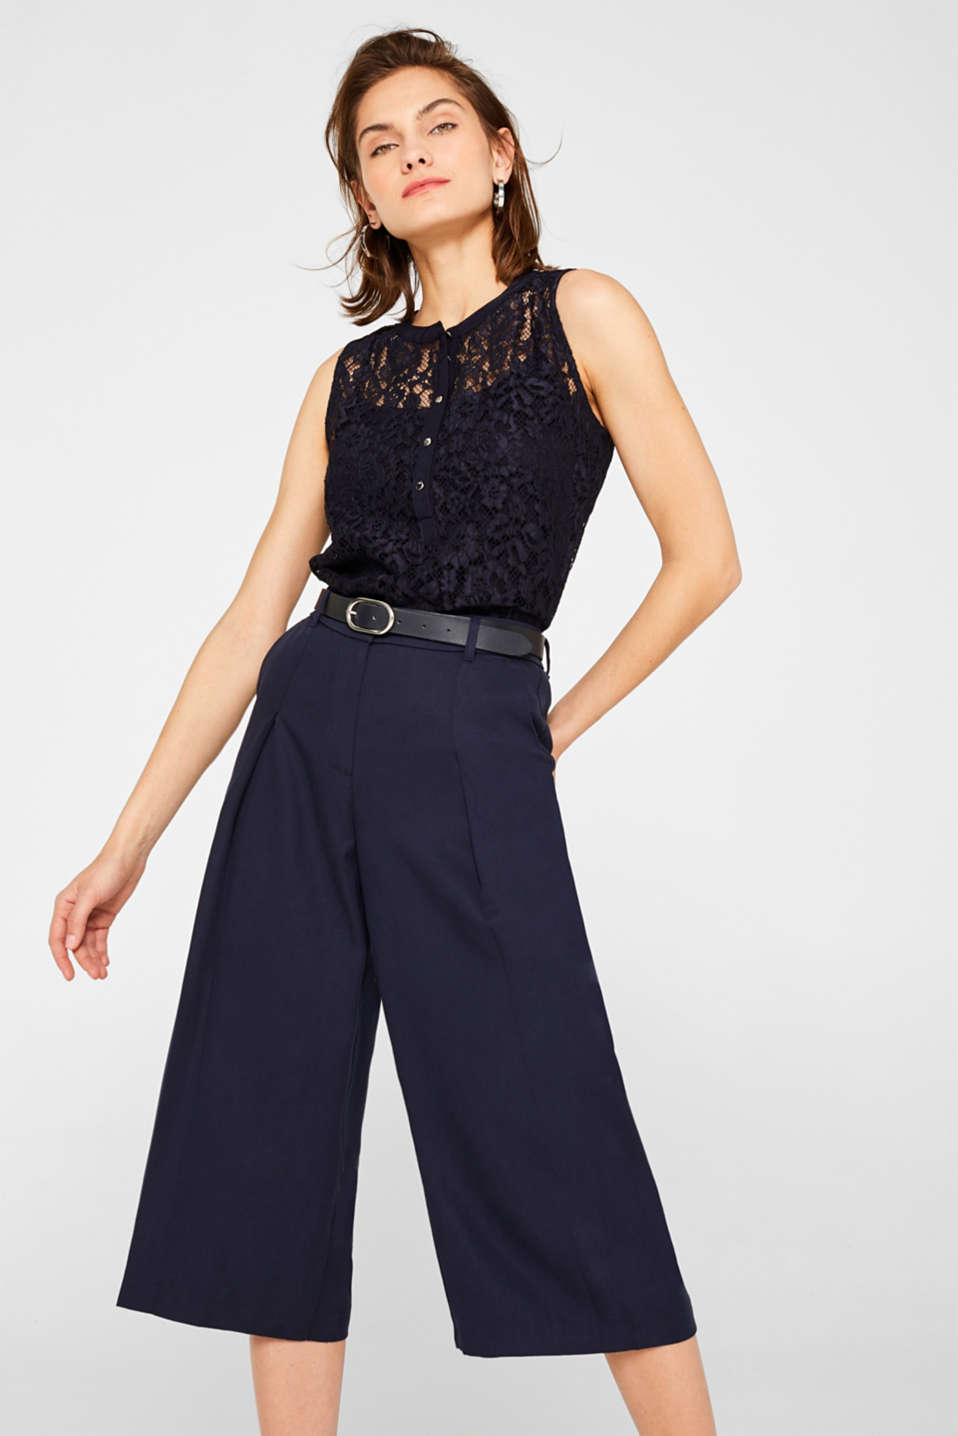 2-in-1 blouse top made of lace